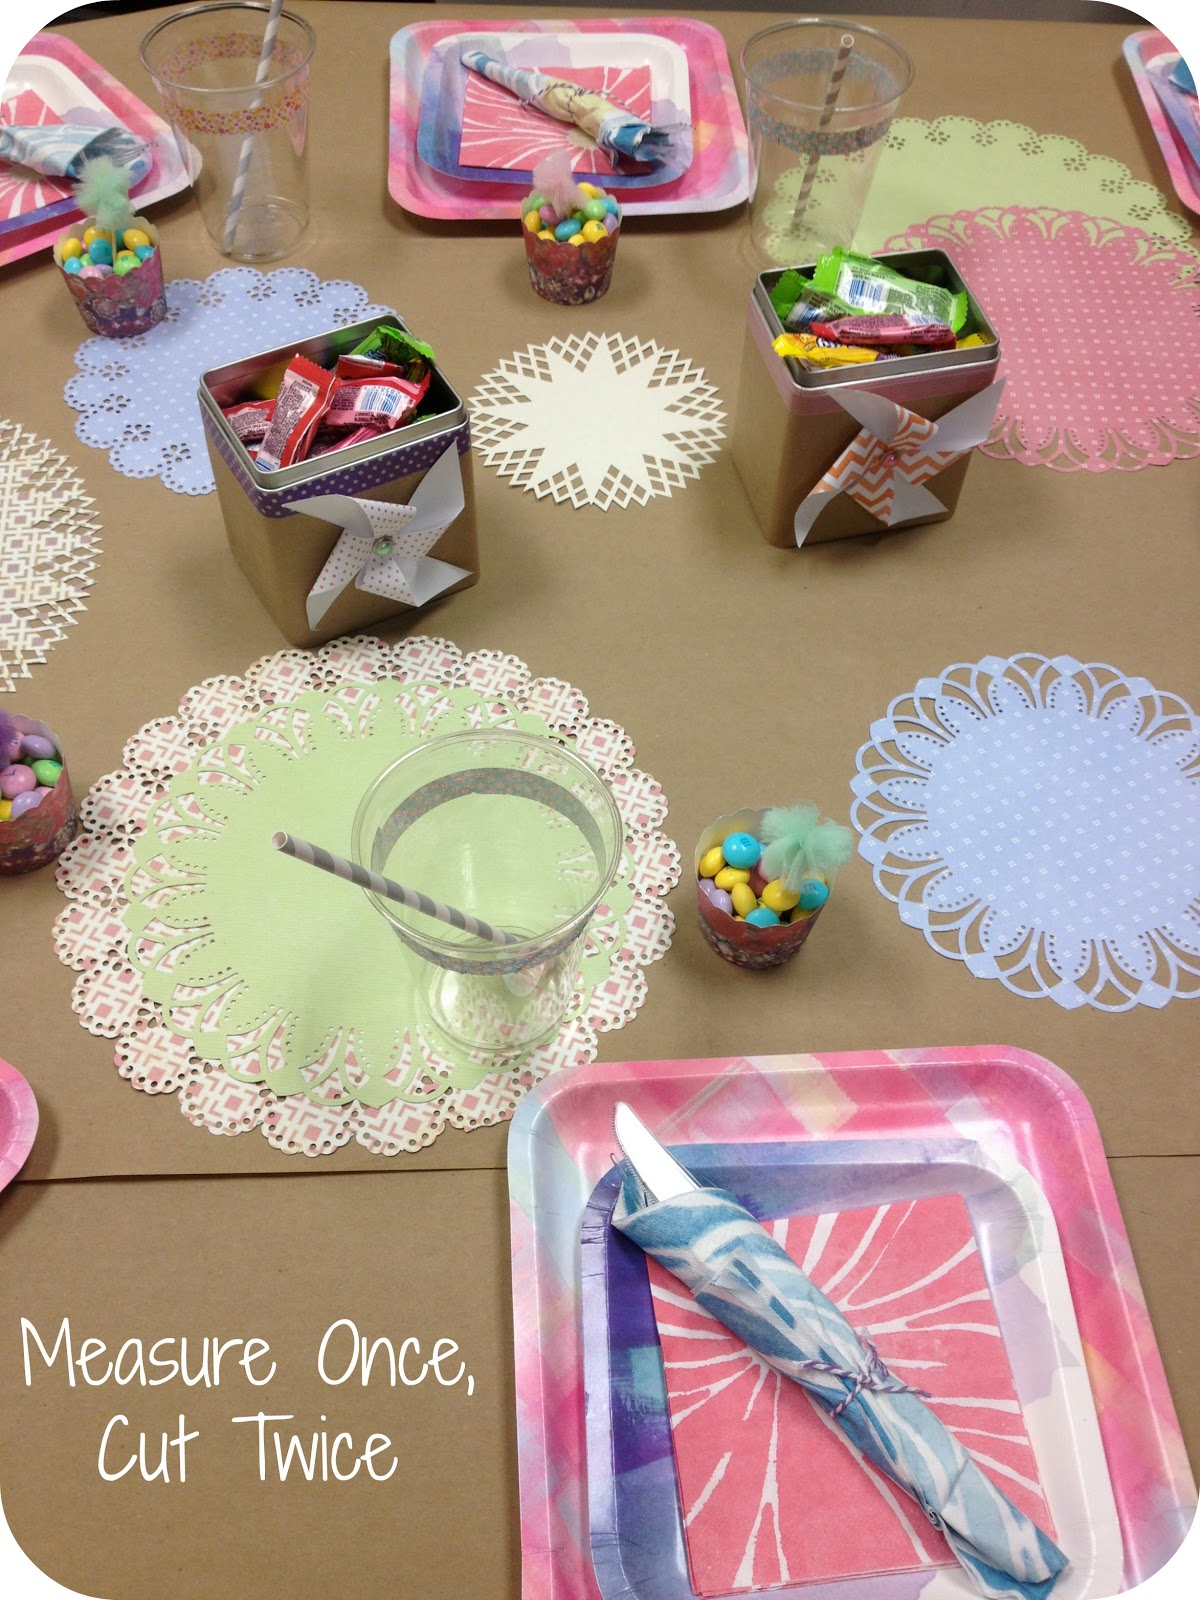 Scrapbook theme ideas - Then Covered The Kraft Paper In Homemade Doilies That I Cut From All Sorts Of Pastel Scrapbook Paper